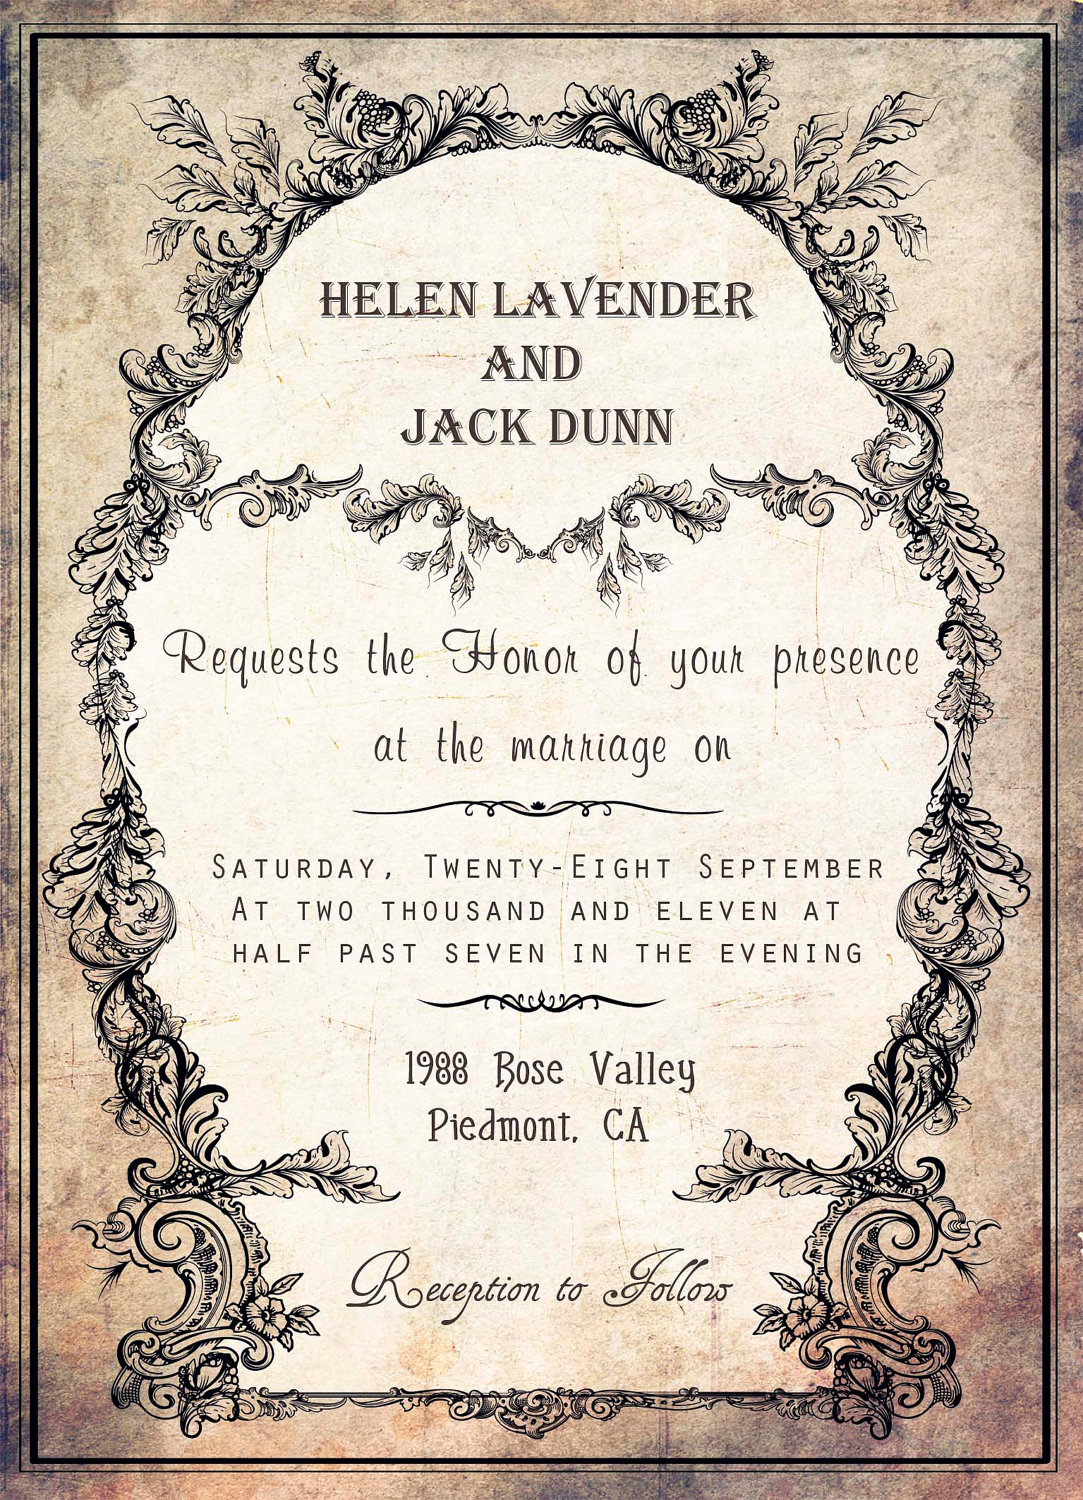 Engagement Invitation Template Jeppefmtk - Wedding invitation templates: wedding invitation suite templates